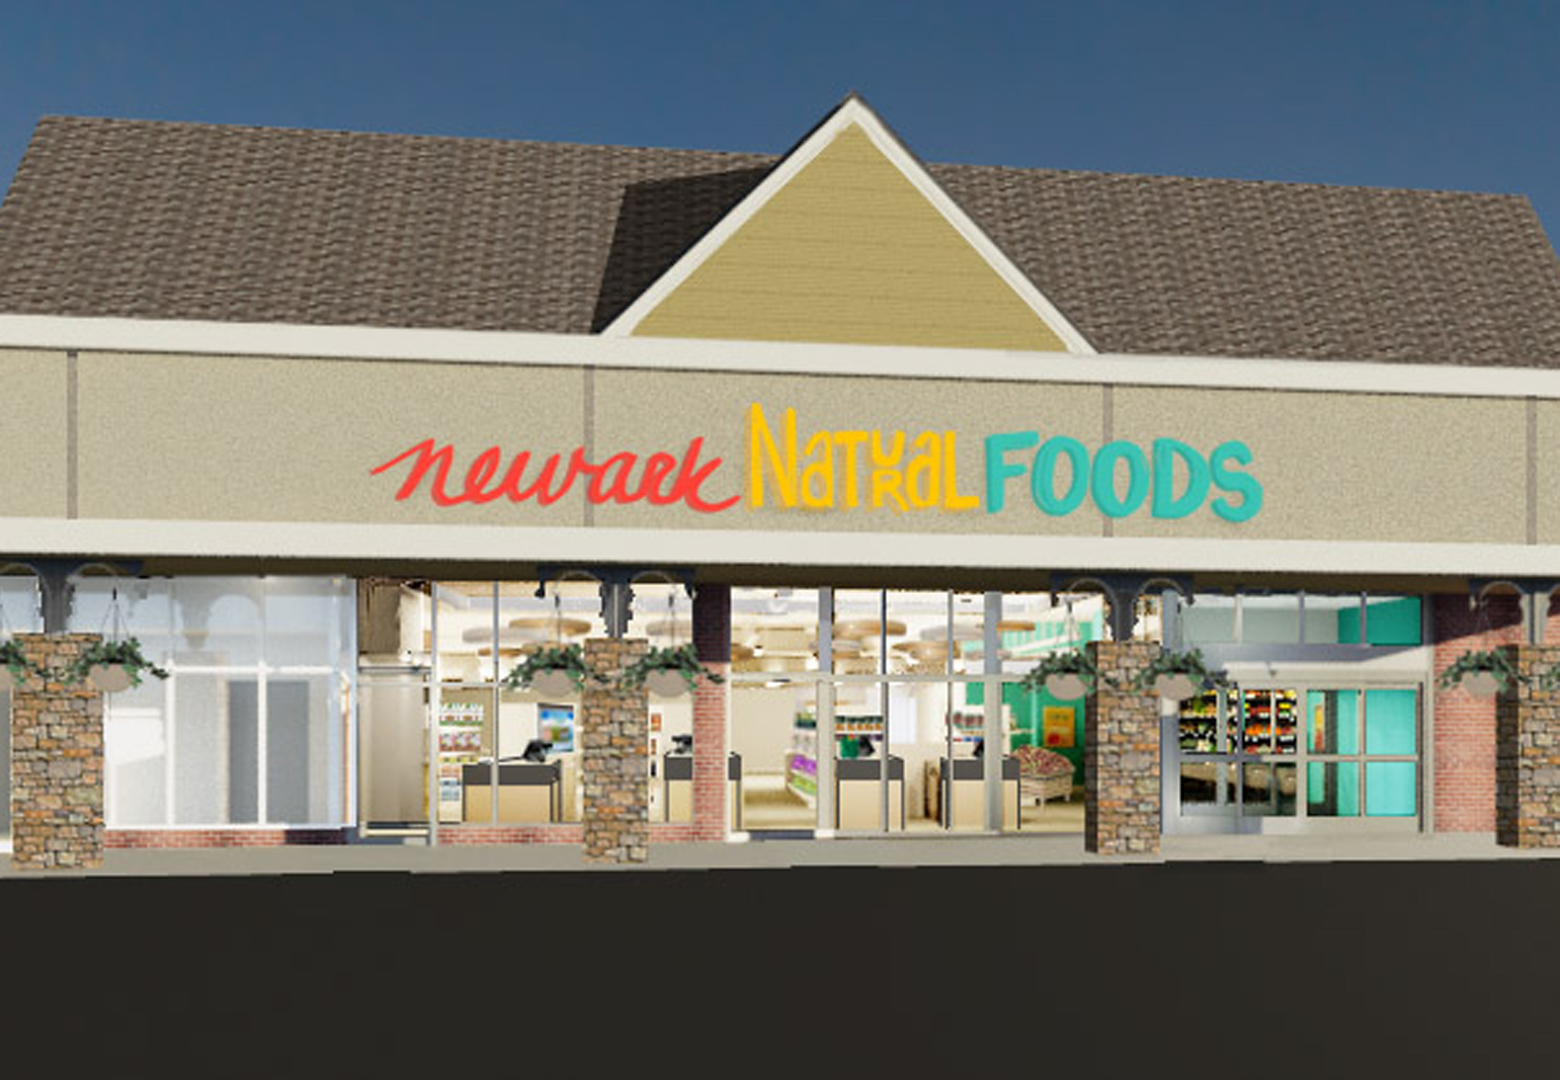 141029-Newark-Natural-Foods-Exterior-Perspective